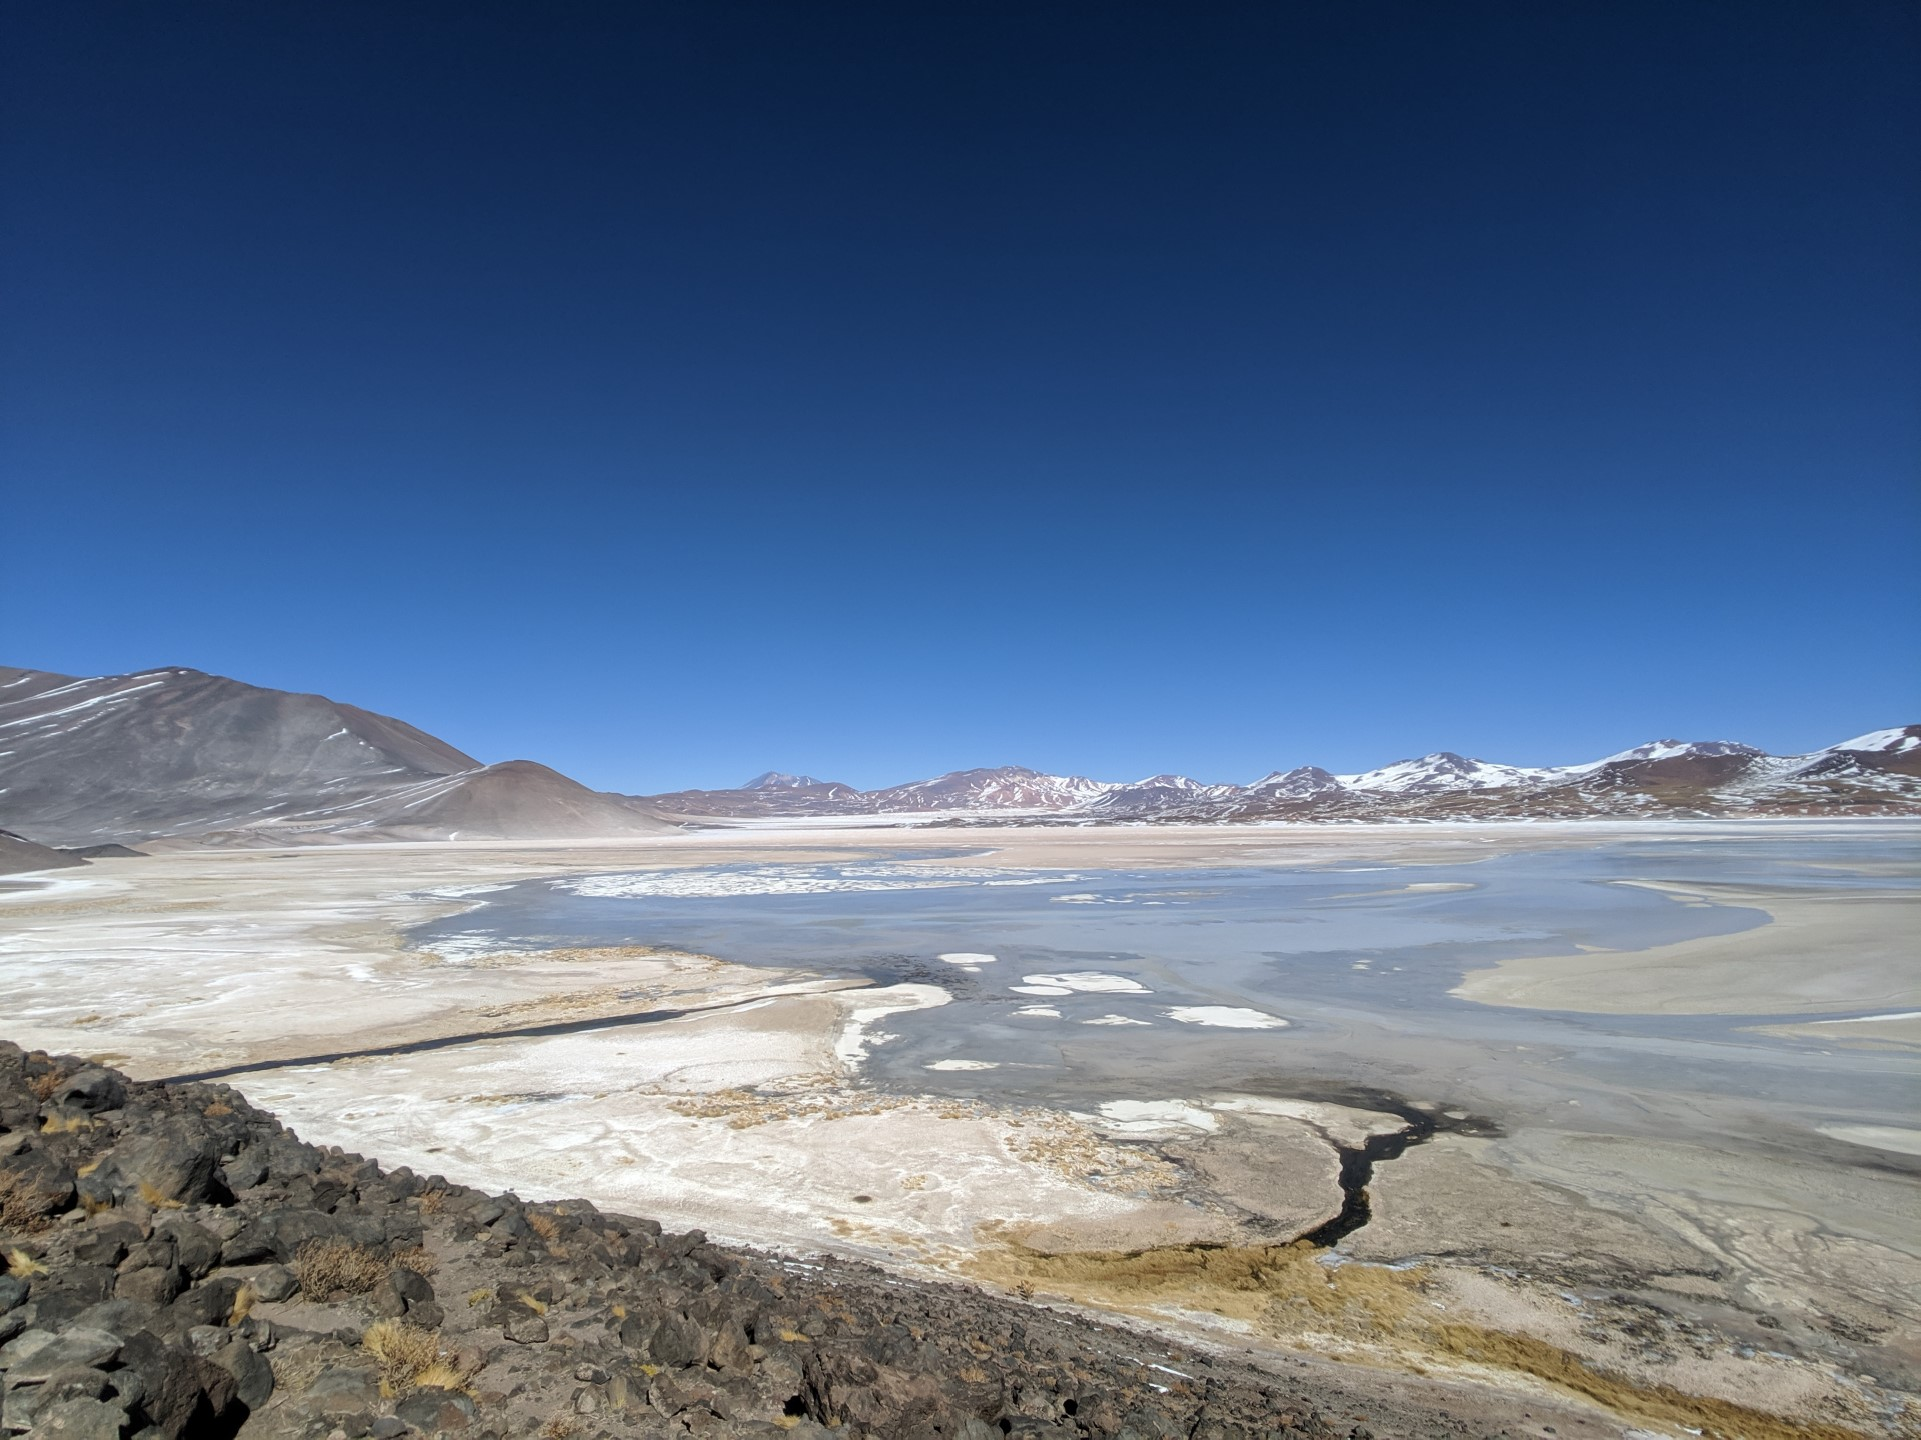 This is a mix between a lake and some salt flats